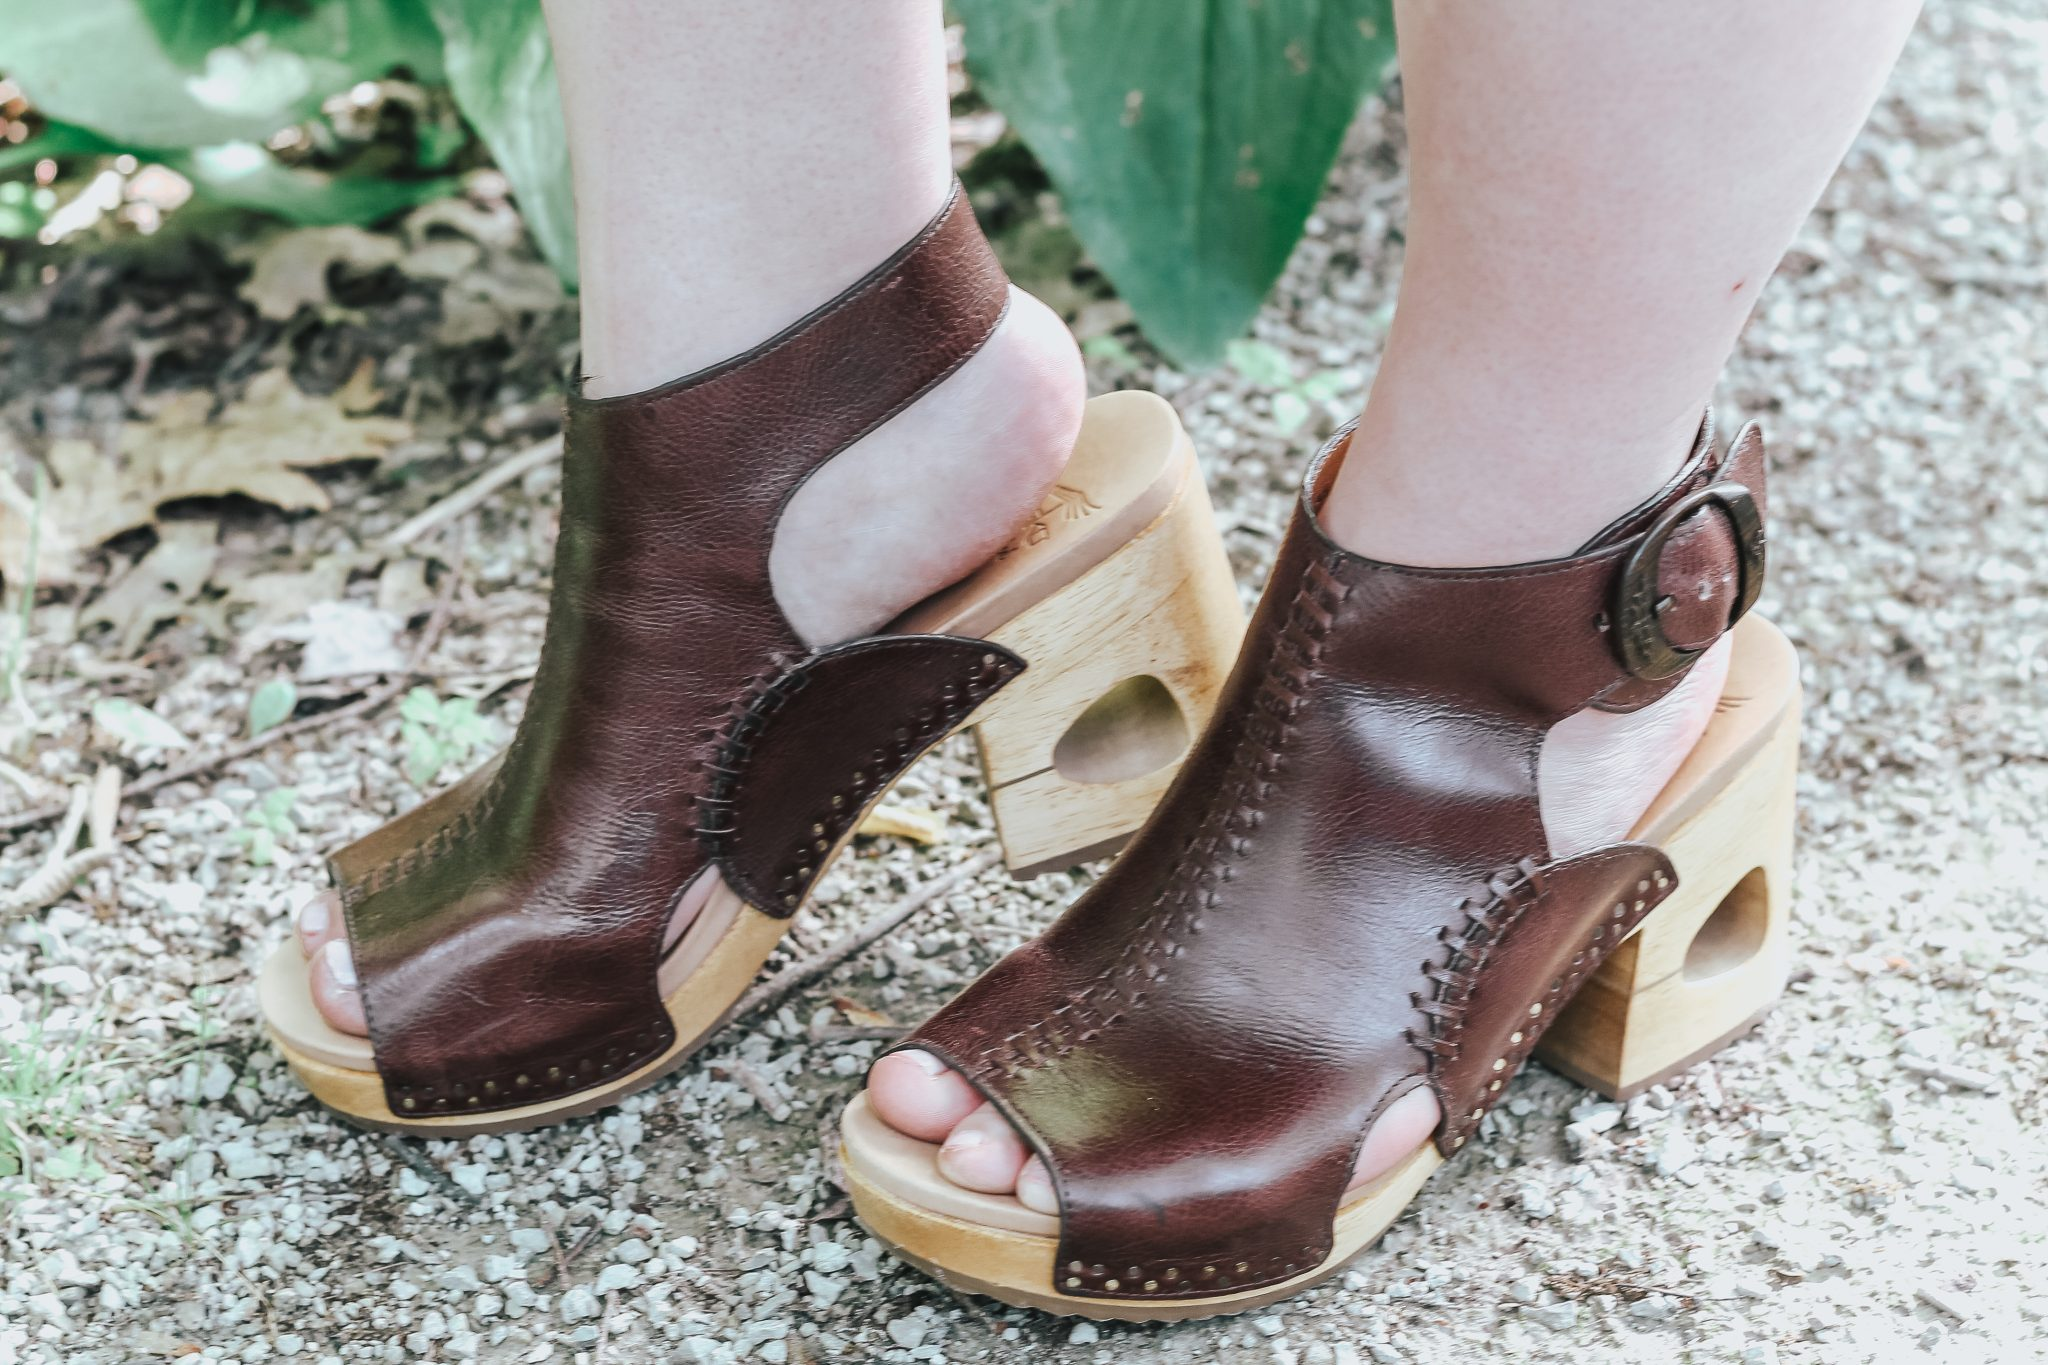 Where to Buy Stylish and Comfortable Shoes